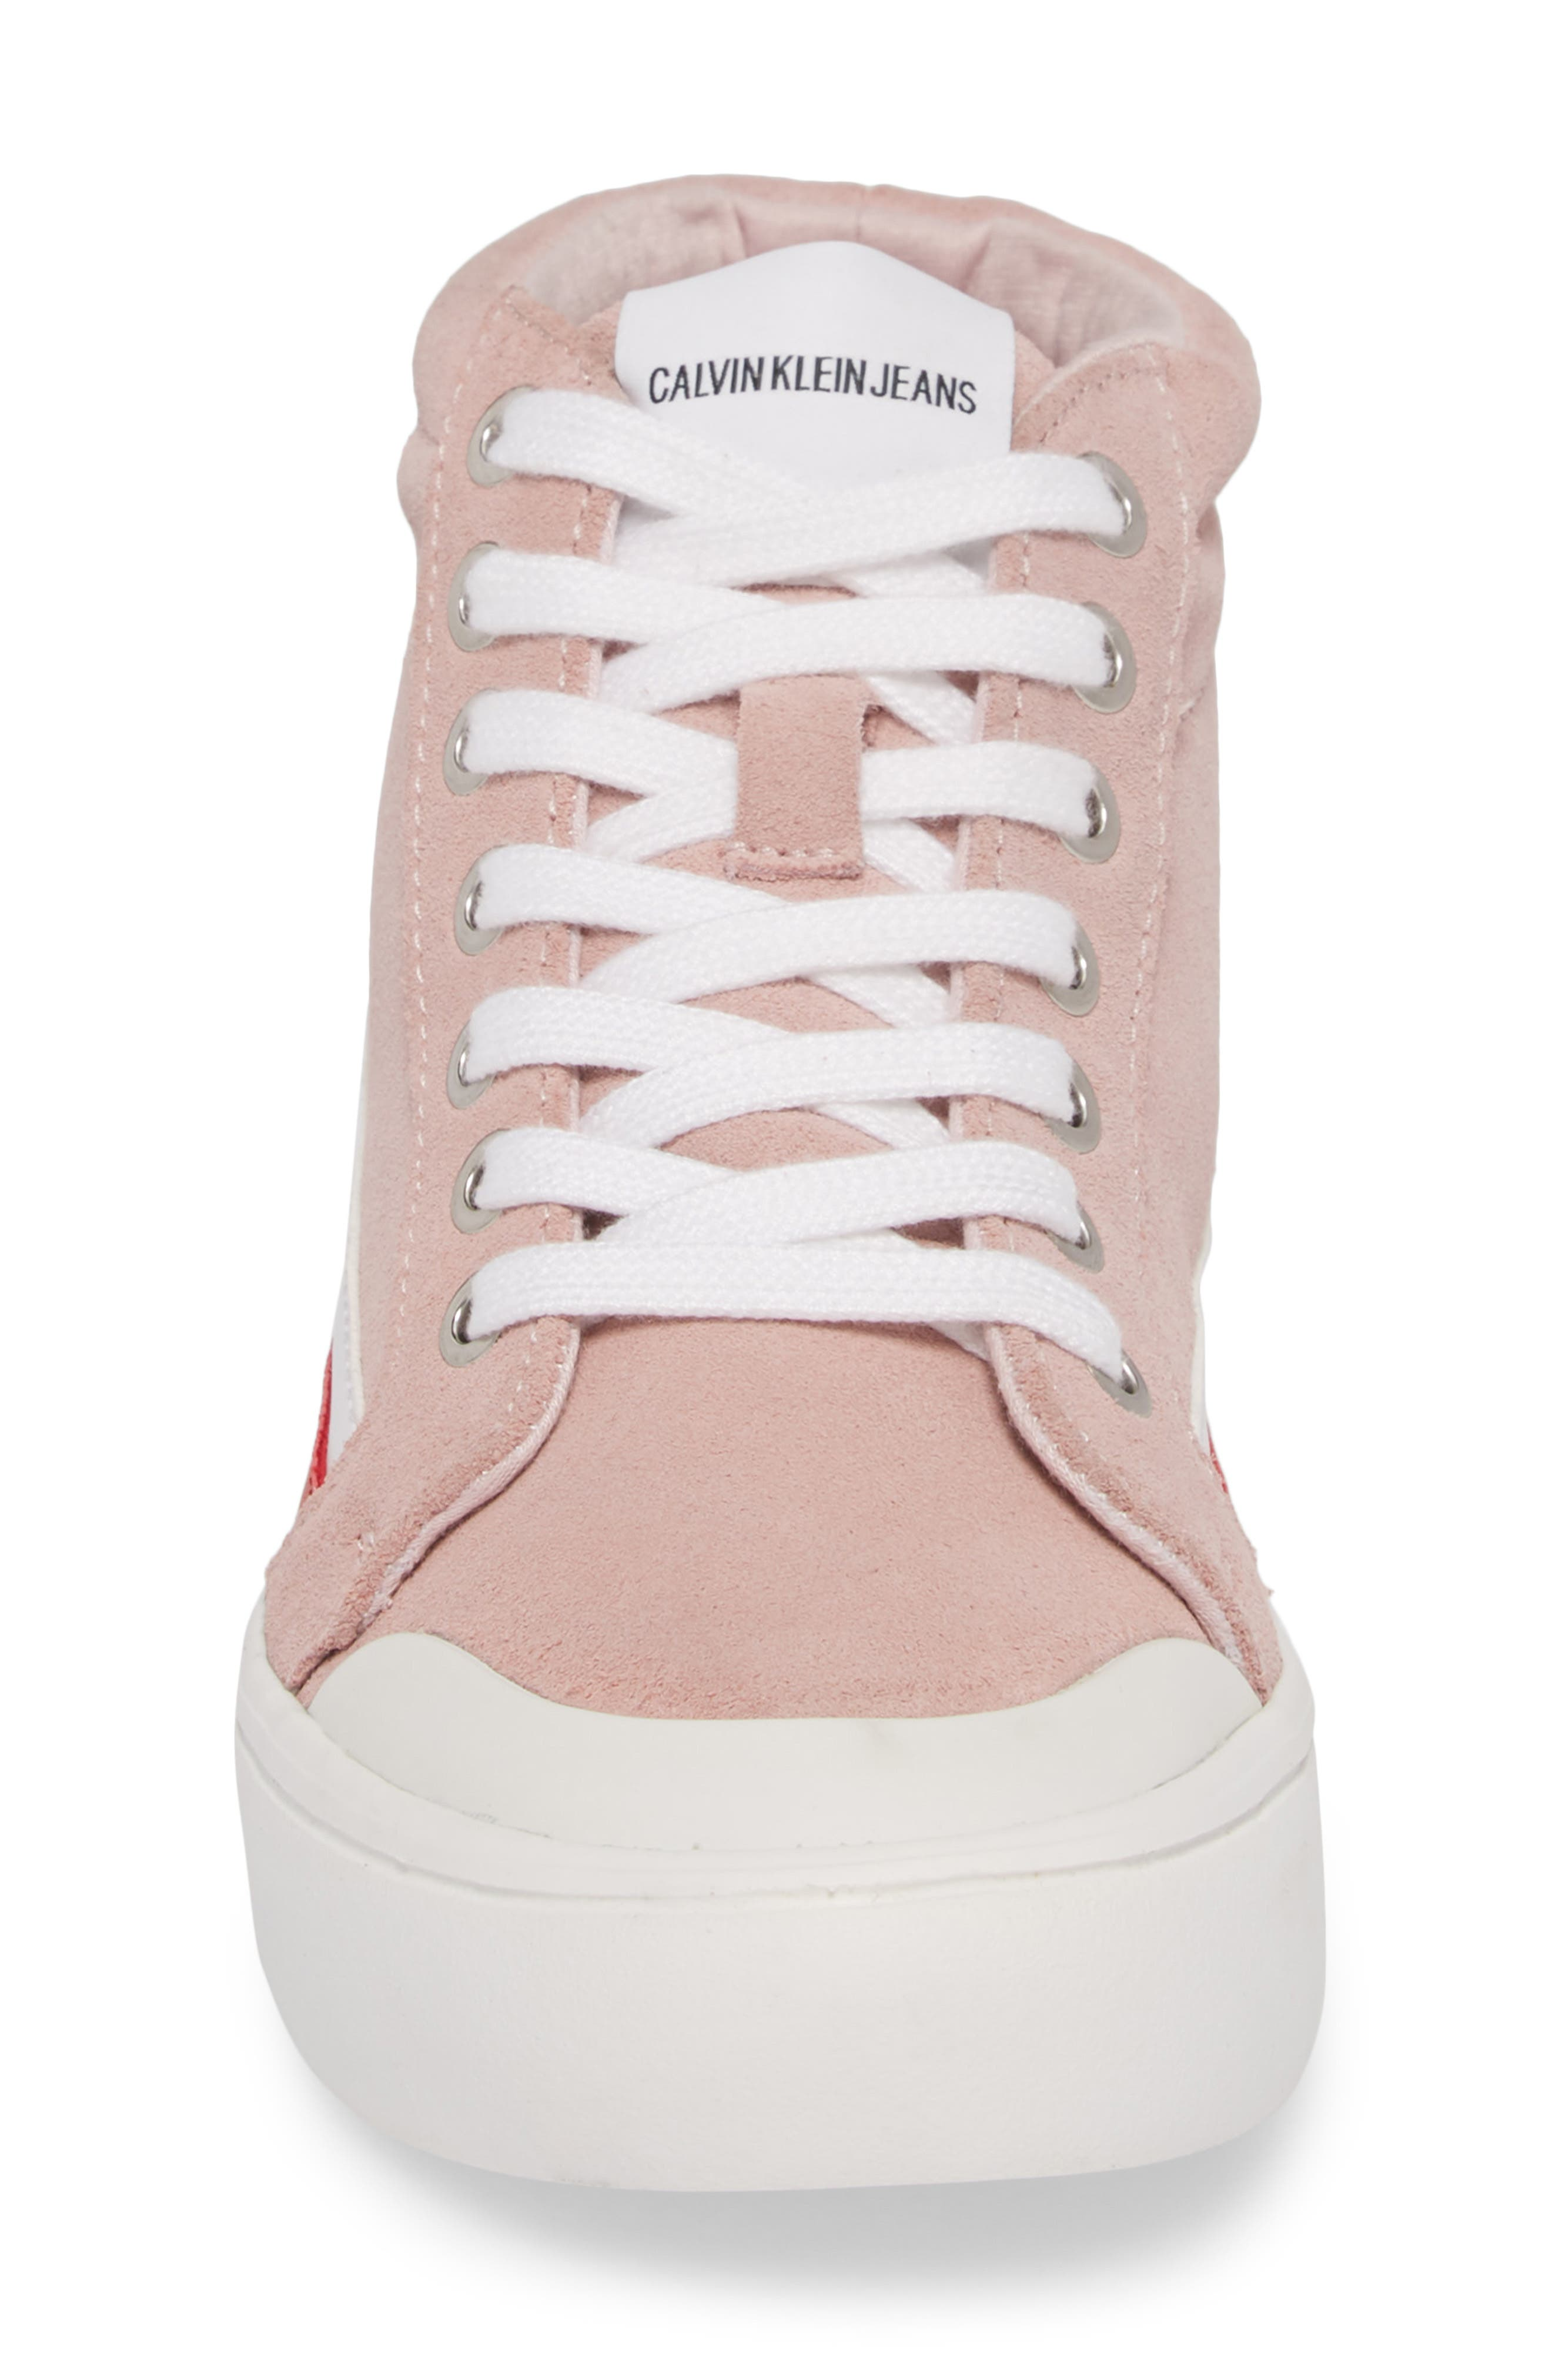 High Top Sneaker,                             Alternate thumbnail 5, color,                             Chintz Rose/ White/ Tomato